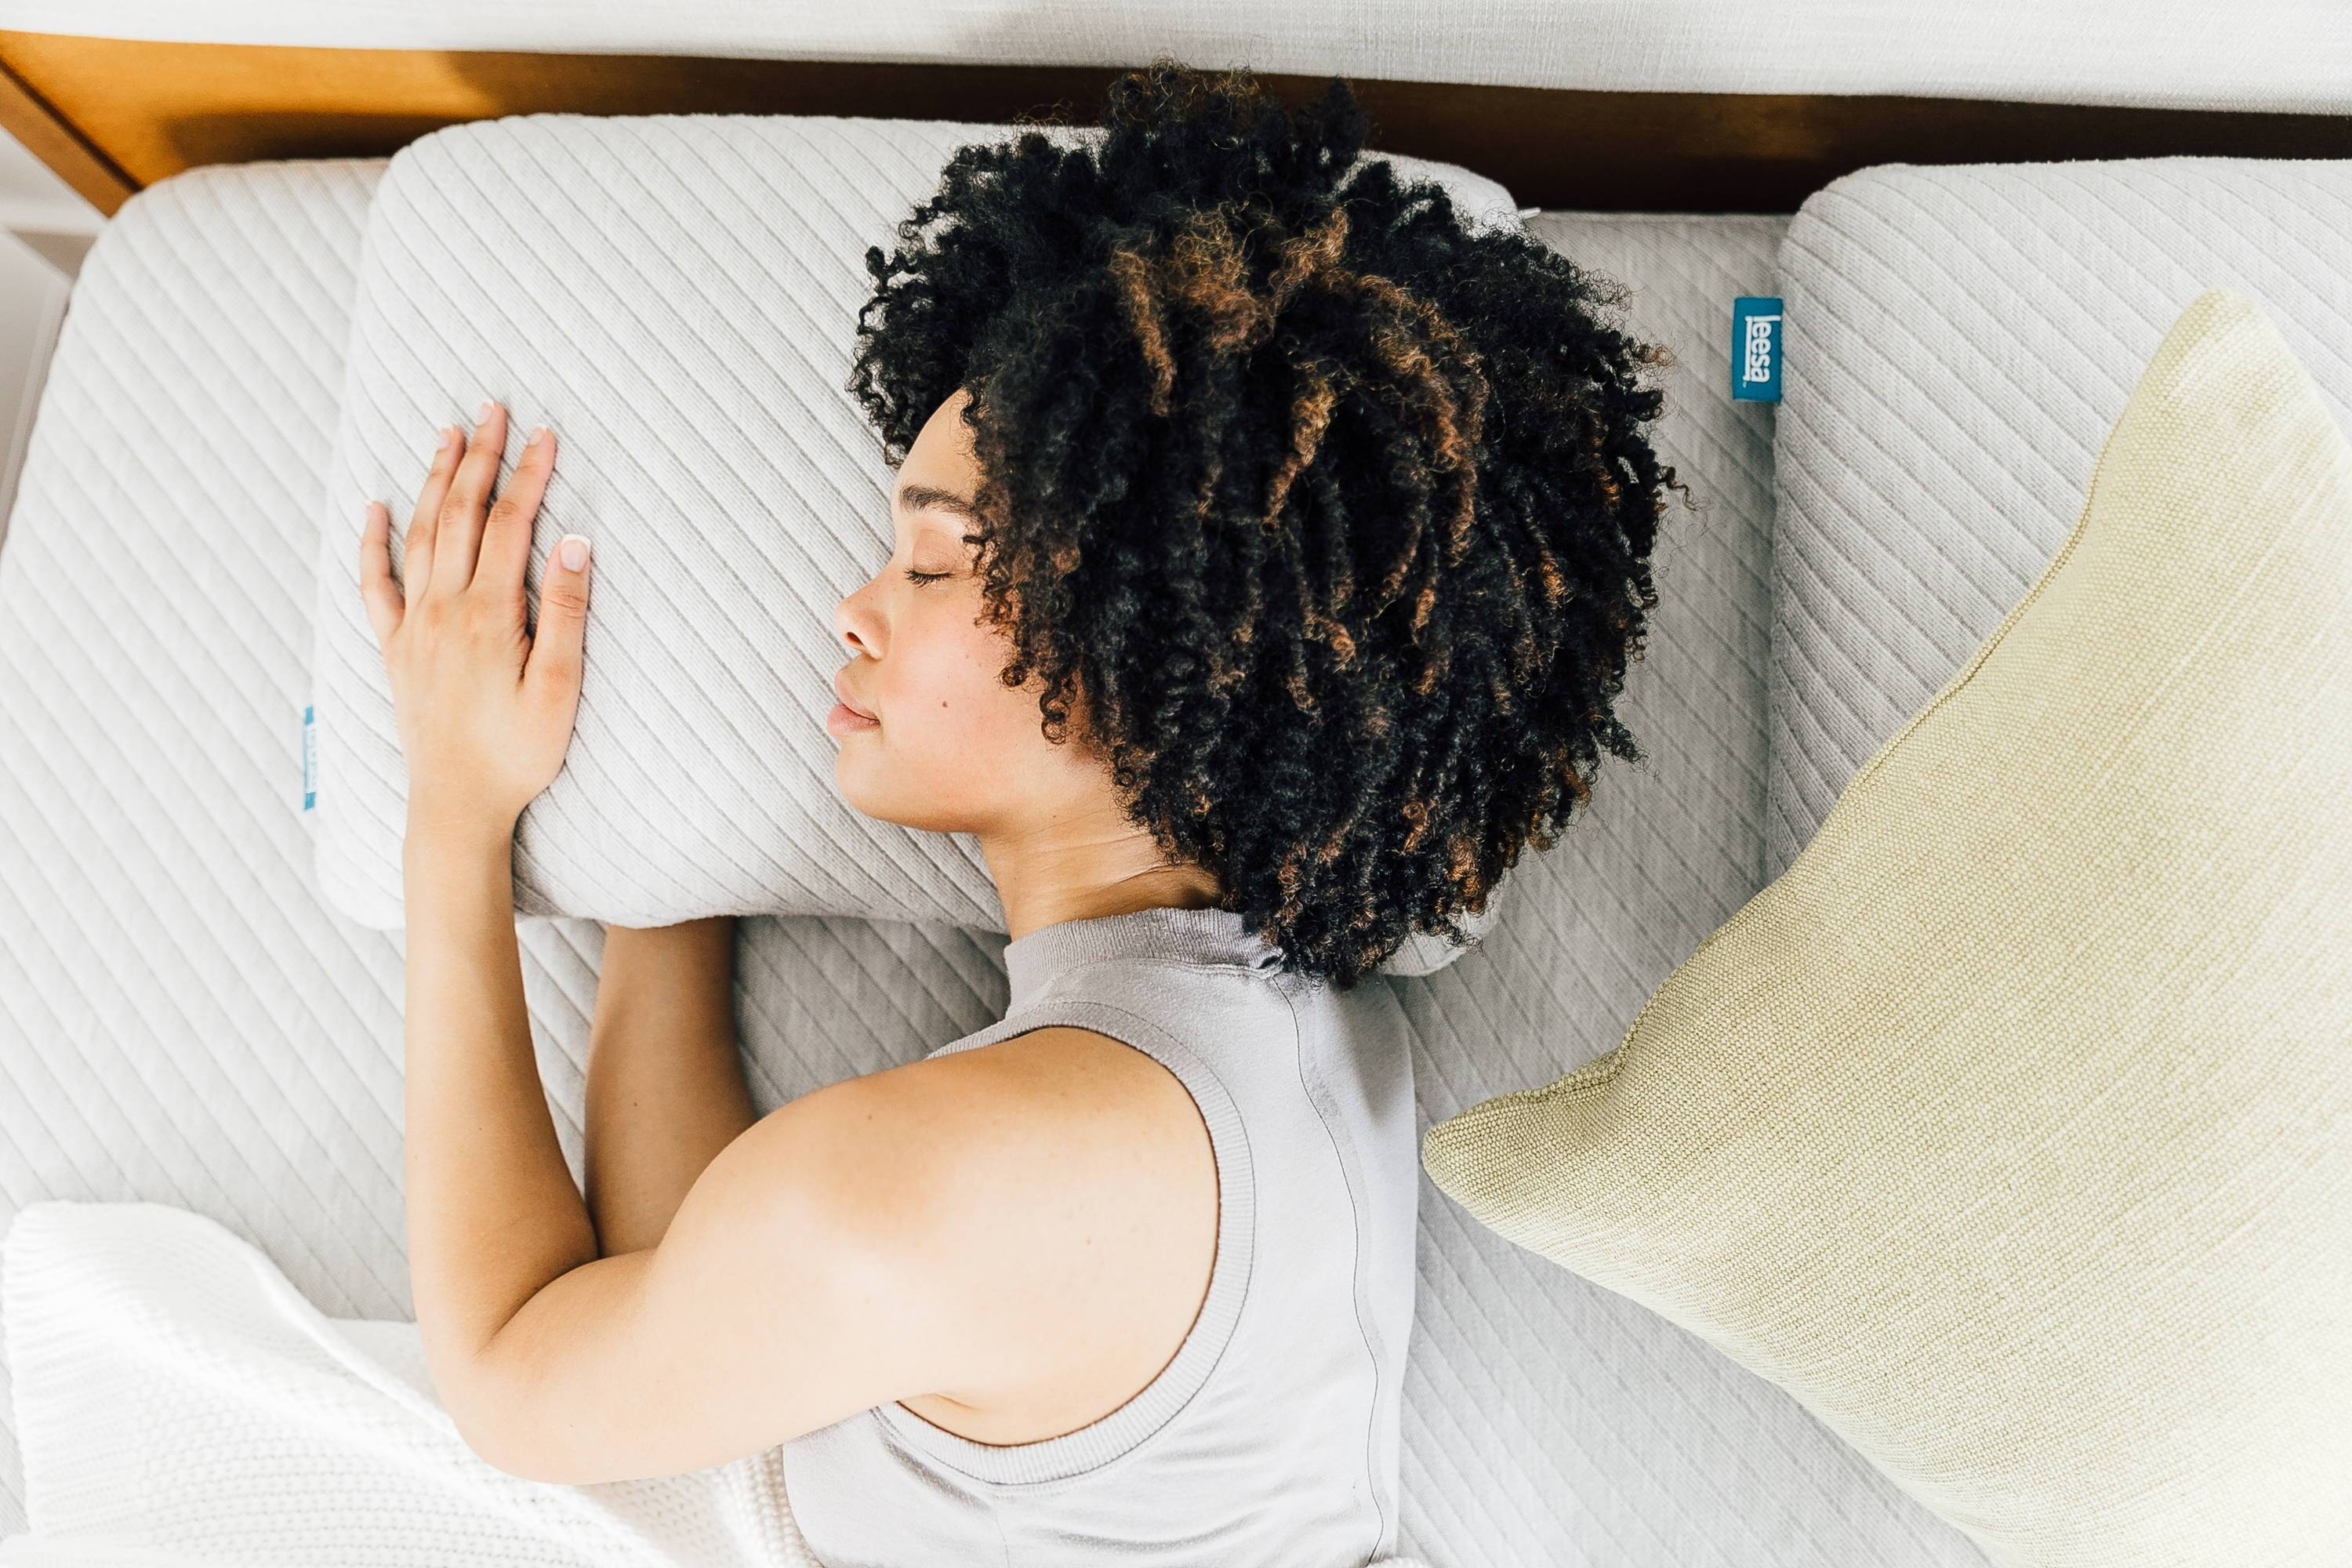 a_lady_sleeping_on_her_side_on_a_leesa_gray_mattress_and_pillow_2